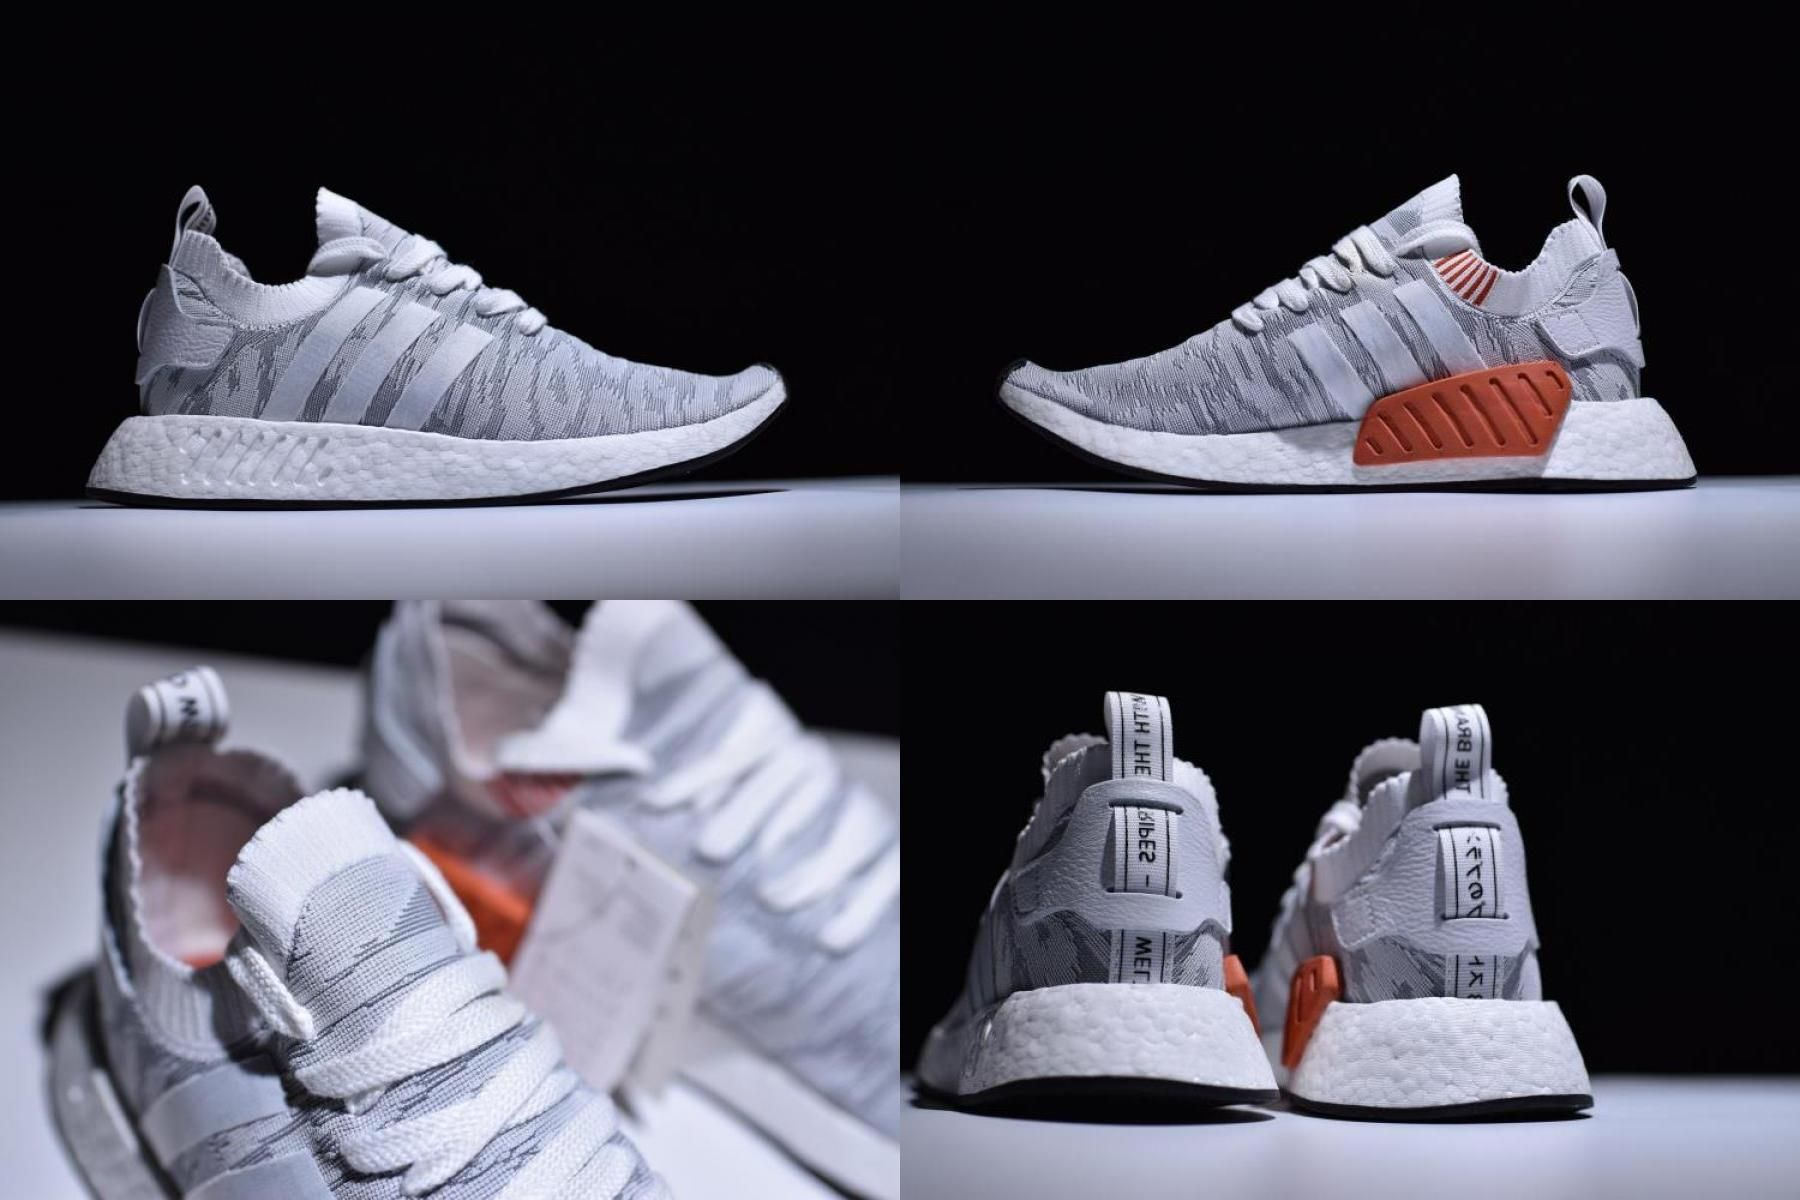 Adidas Nmd R2 Primeknit White Grey Red Men S And Women S Size By9410 In 2020